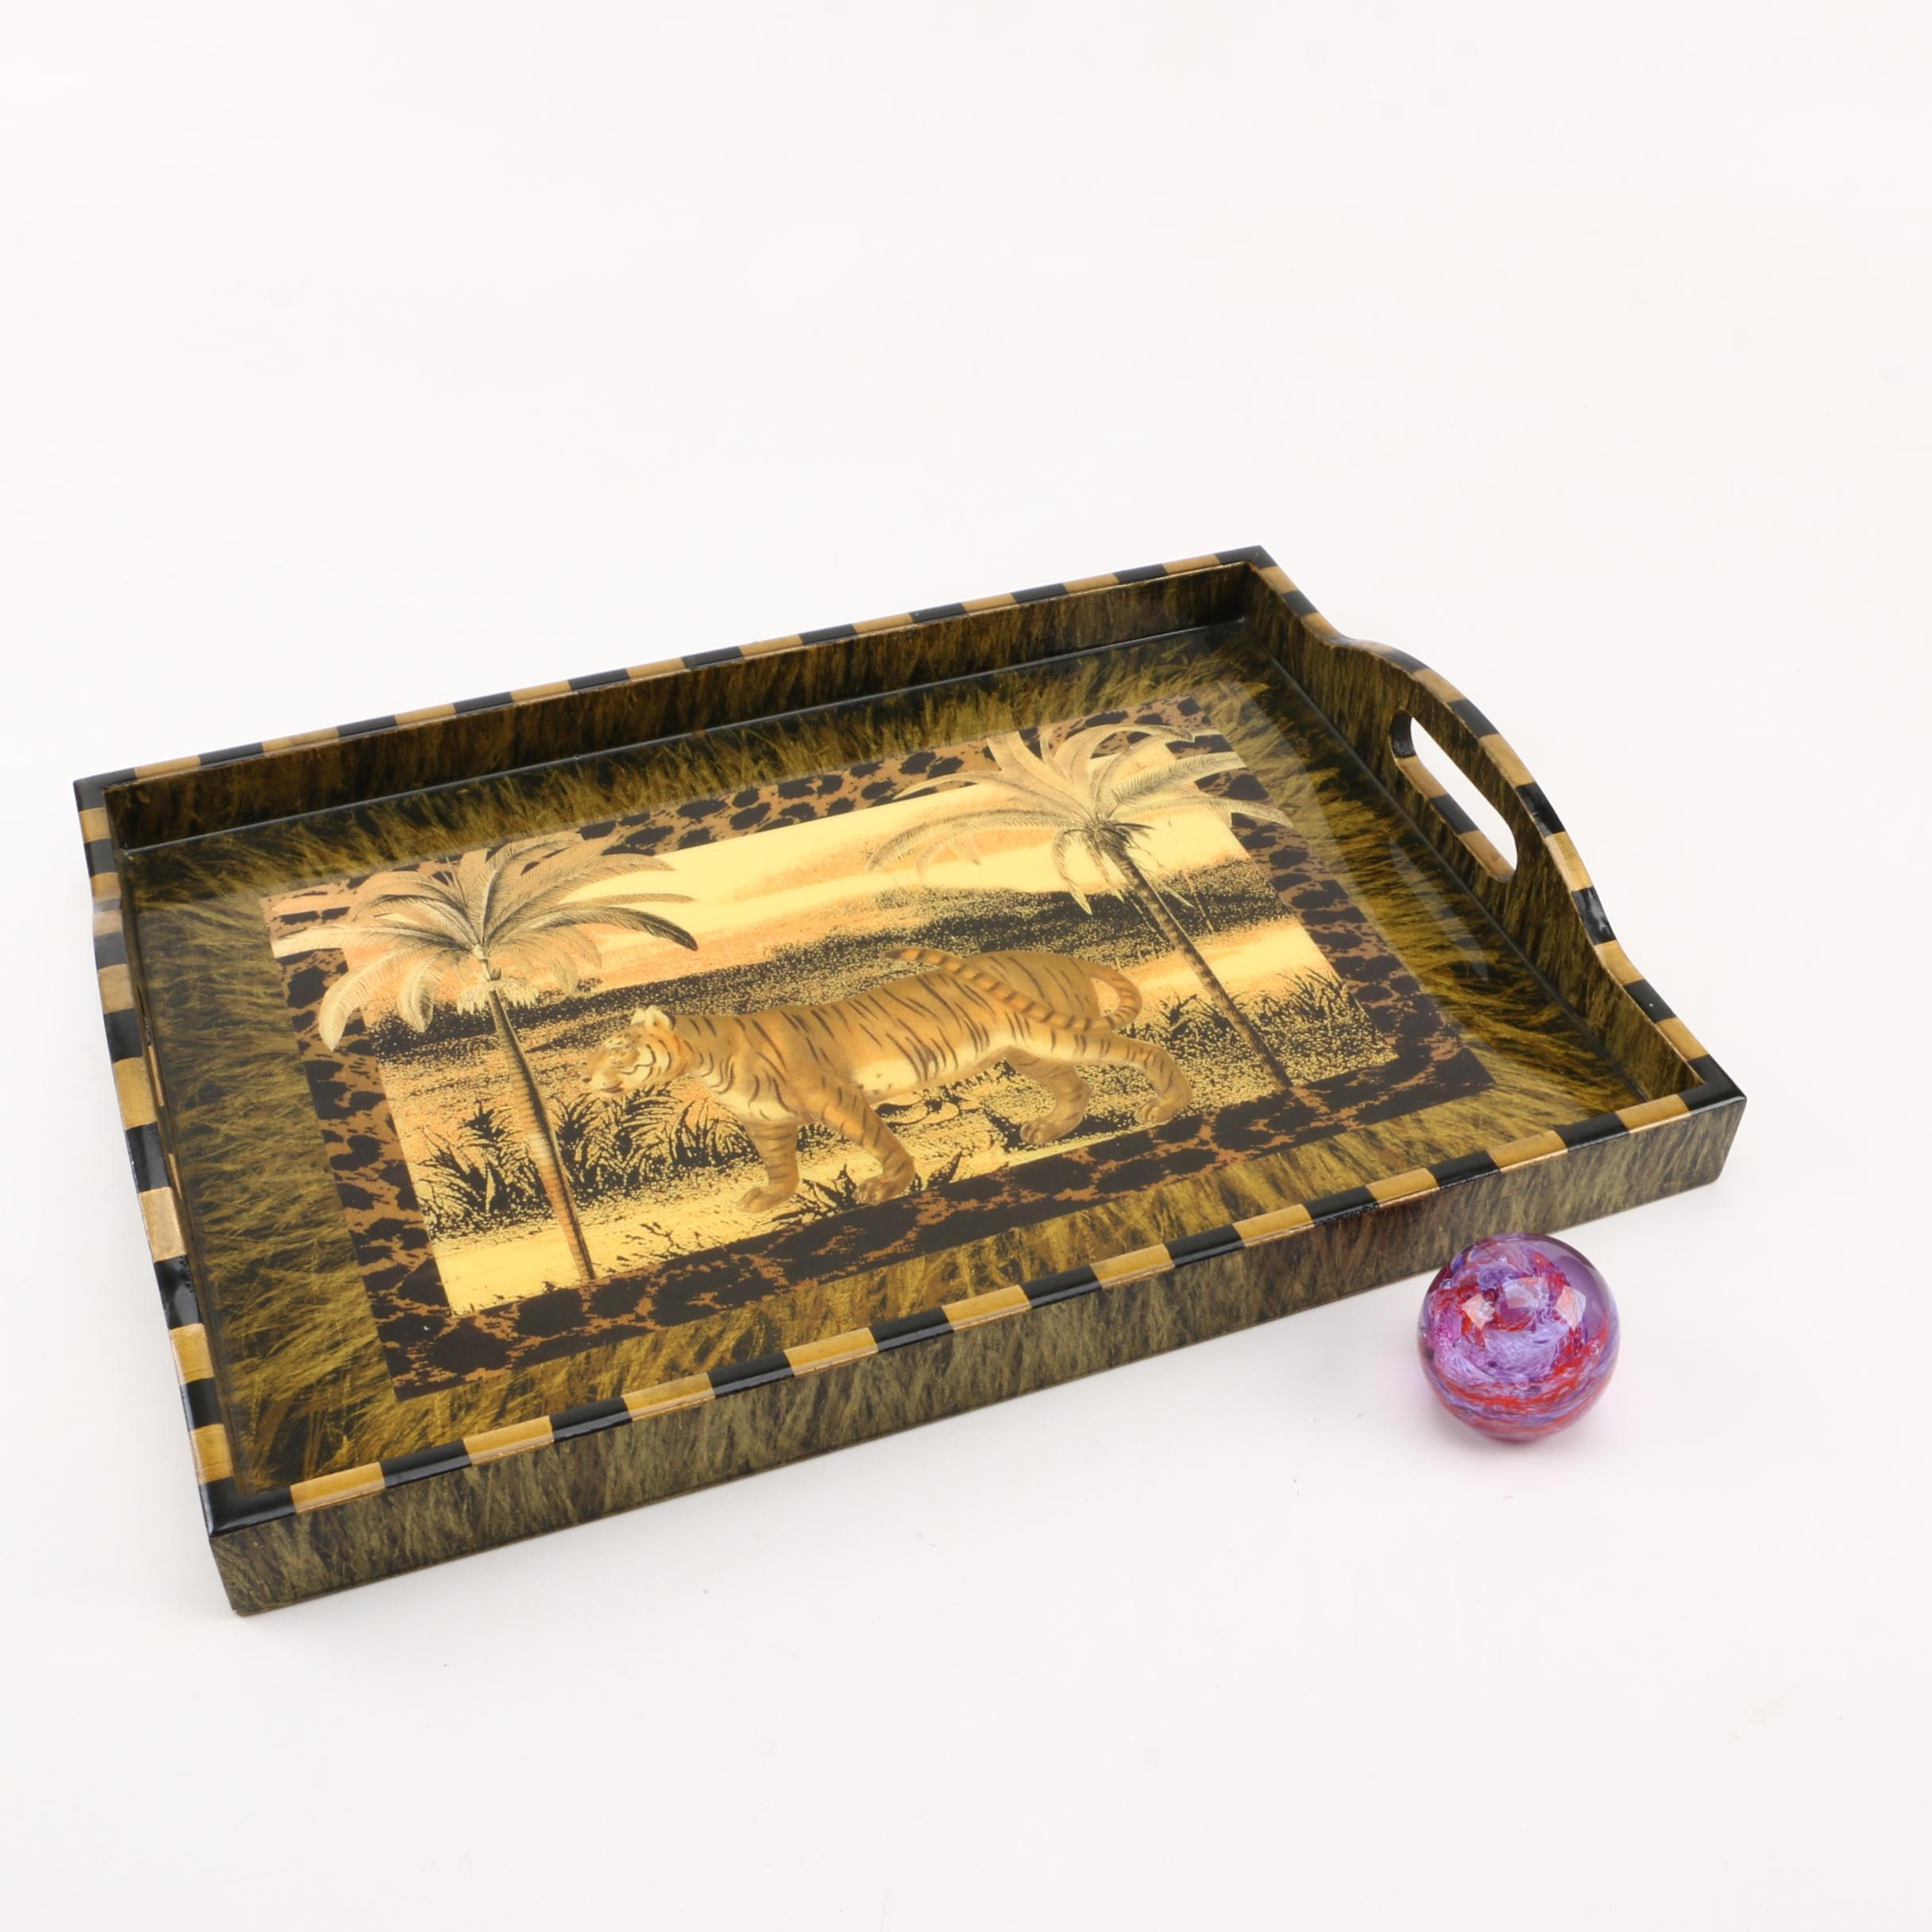 Annie Modica Tray and Brimstone Art Glass Paperweight